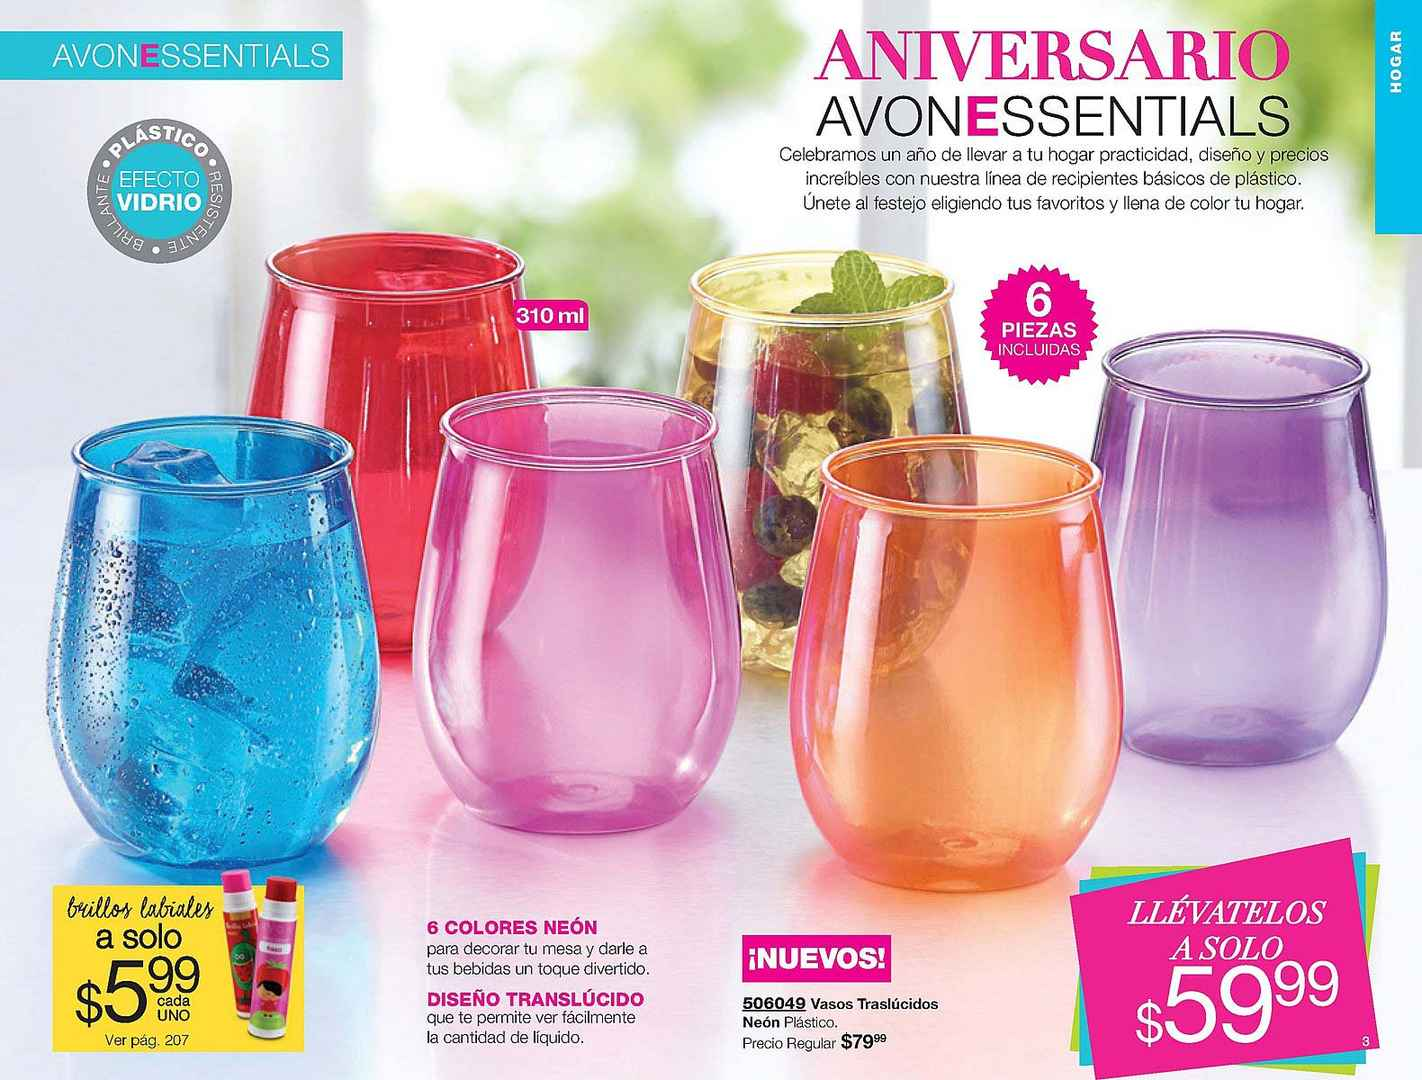 Avon folleto fashion home campa a 1 2017 for Vasos de colores de cristal